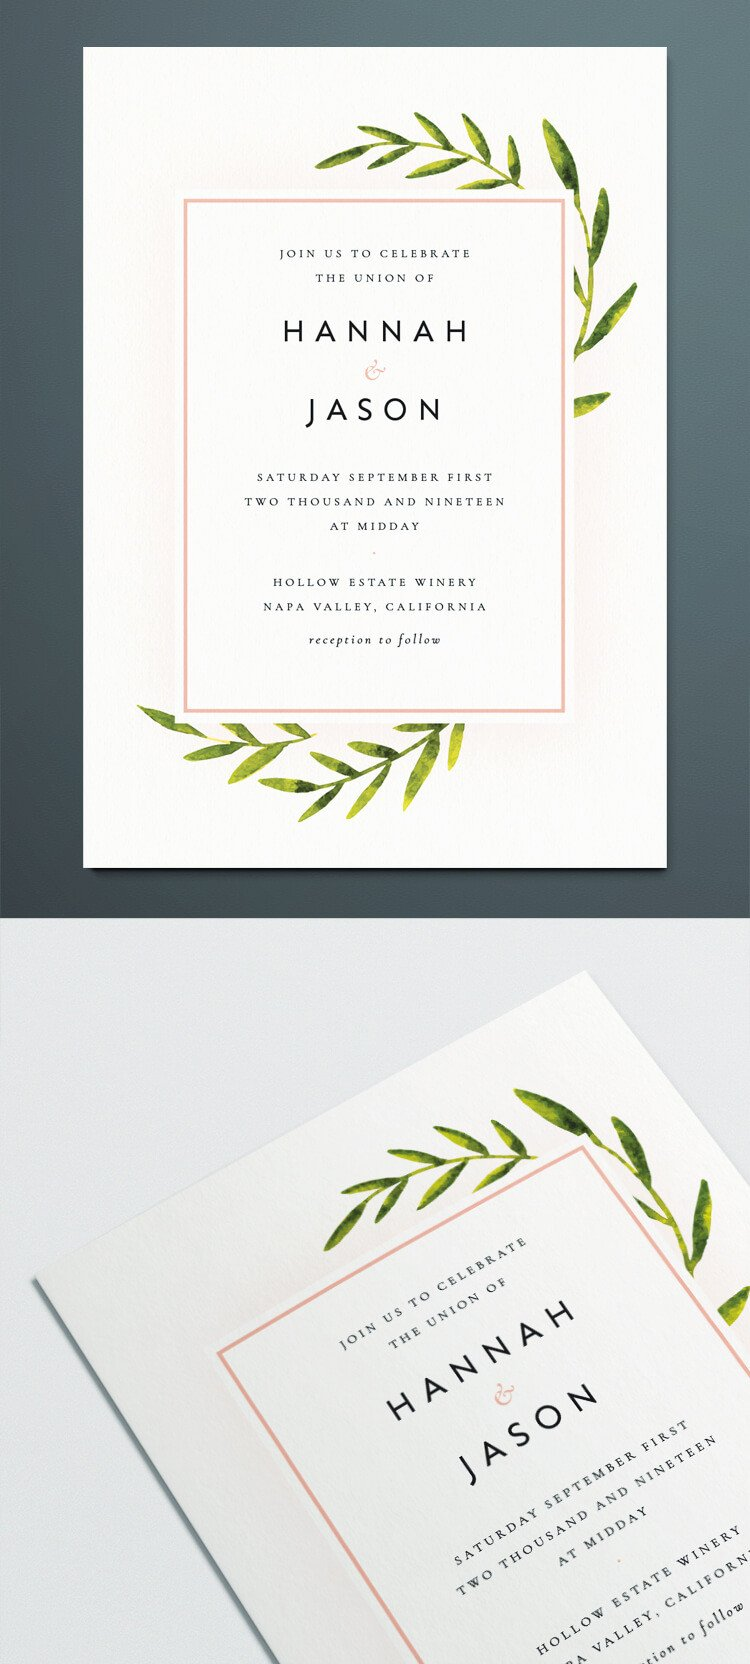 Indesign Wedding Invitation Template Vintage Business Card Template for Indesign